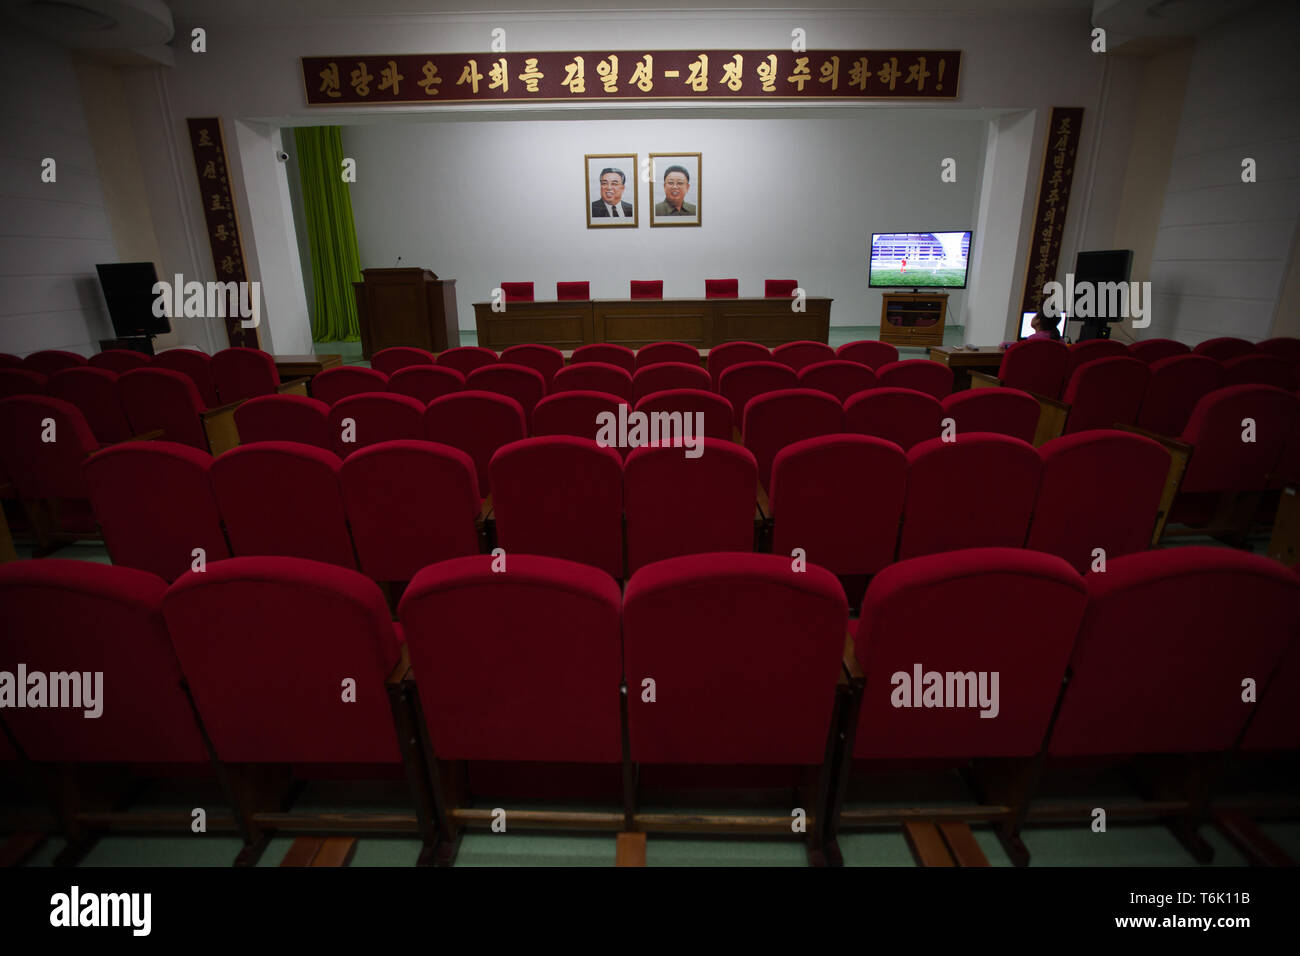 Portraits of Kim Il Sung and Kim Jong Il adorn the wall above a lecture theatre in Pyongyang. - Stock Image